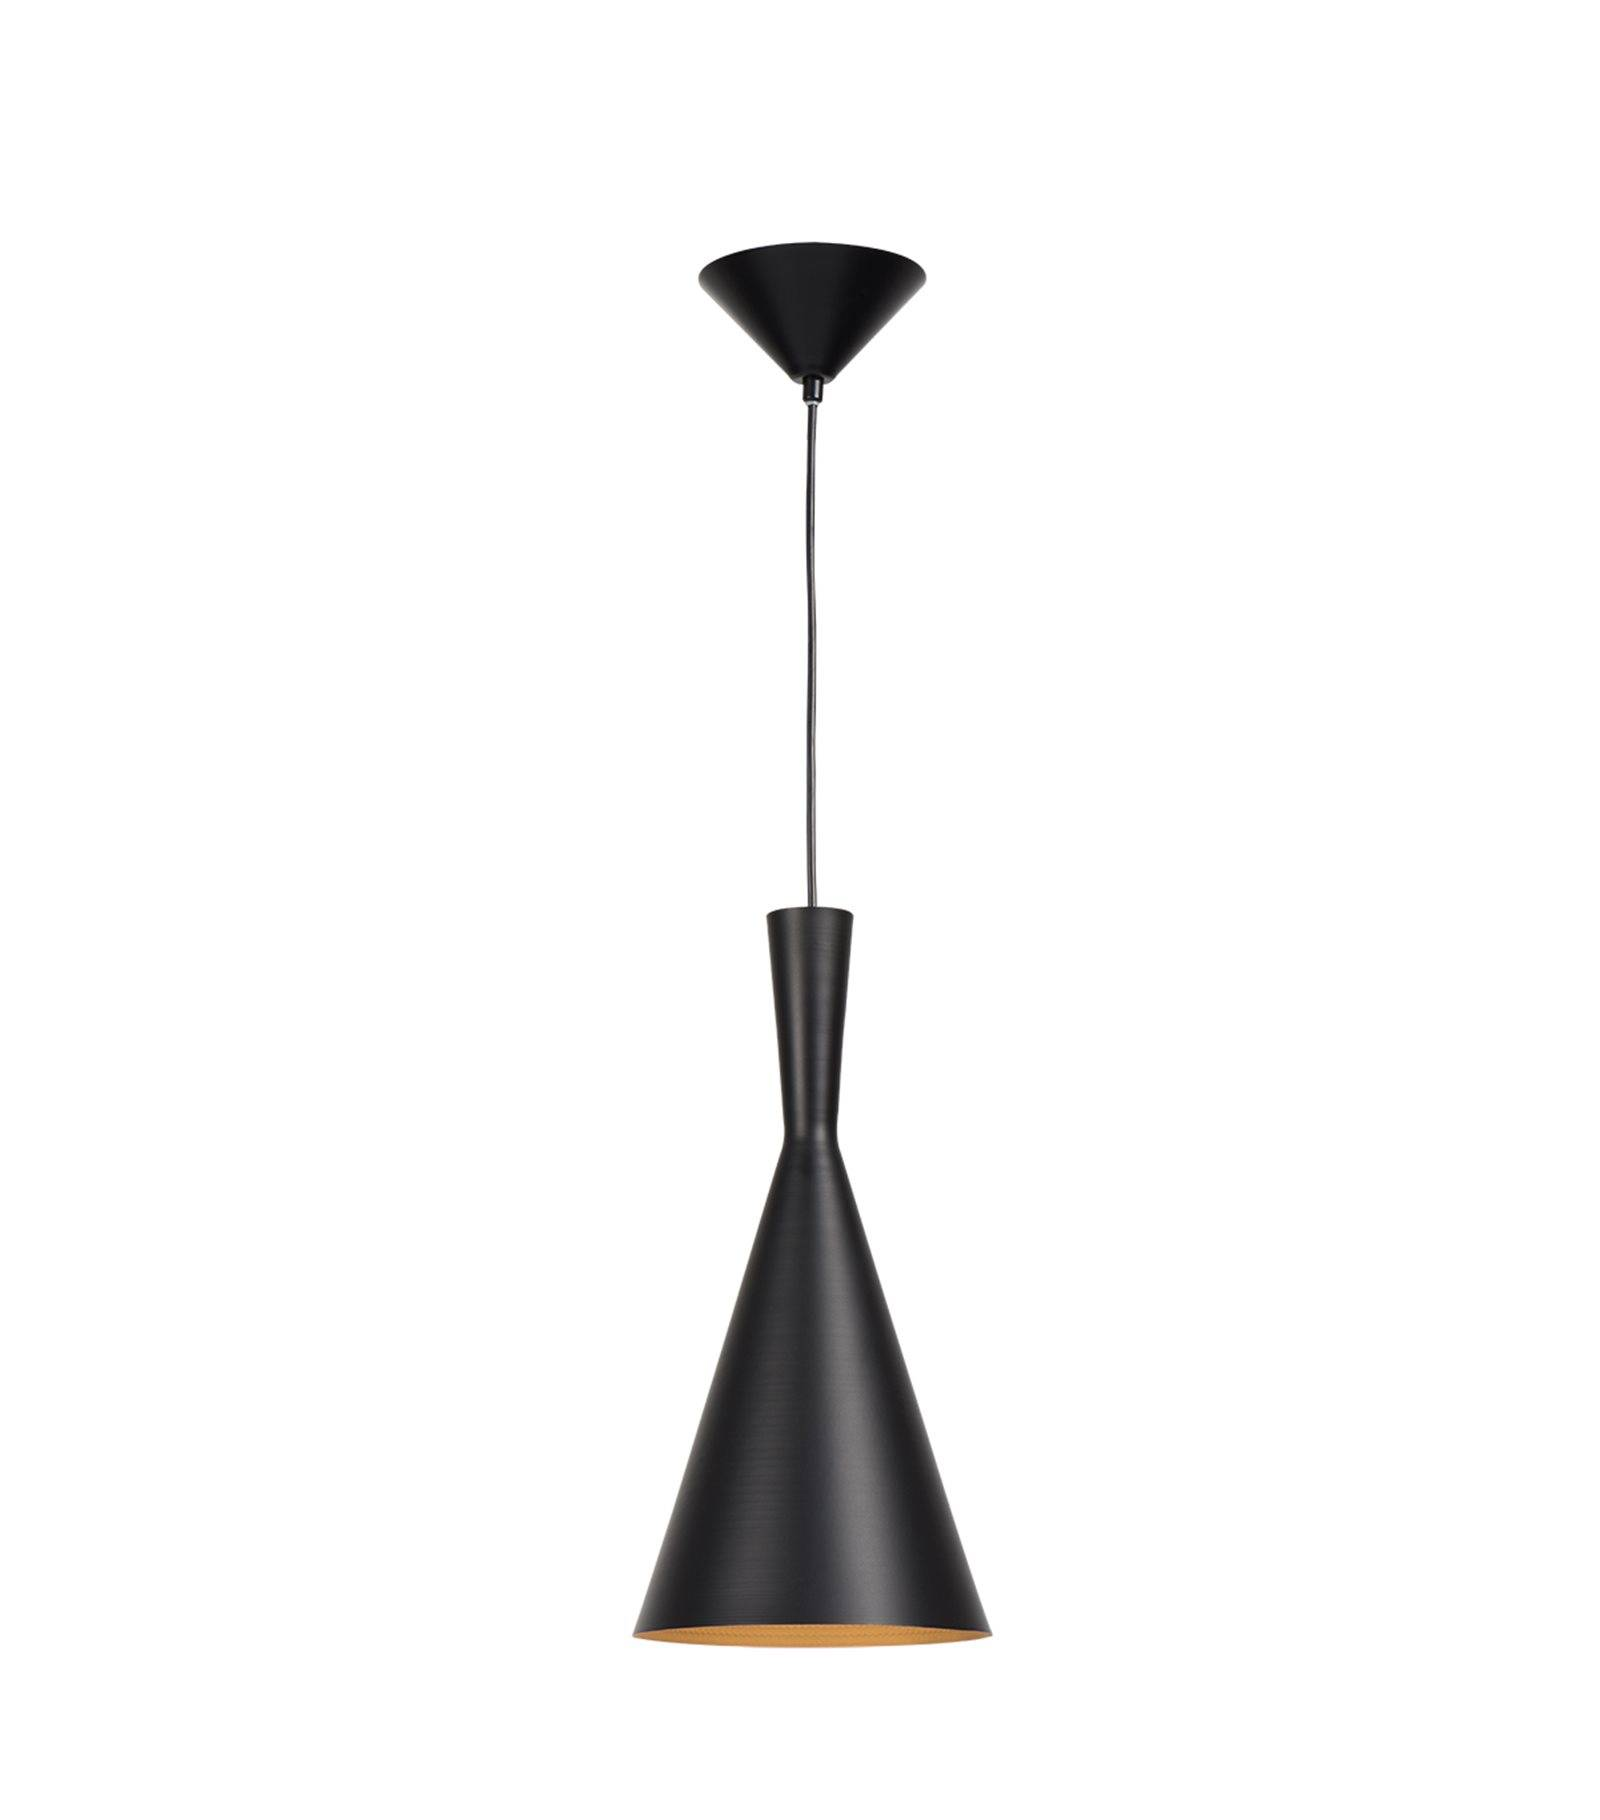 Plafonnier luminaire suspension bellie noir conique e27 for Suspension plafonnier